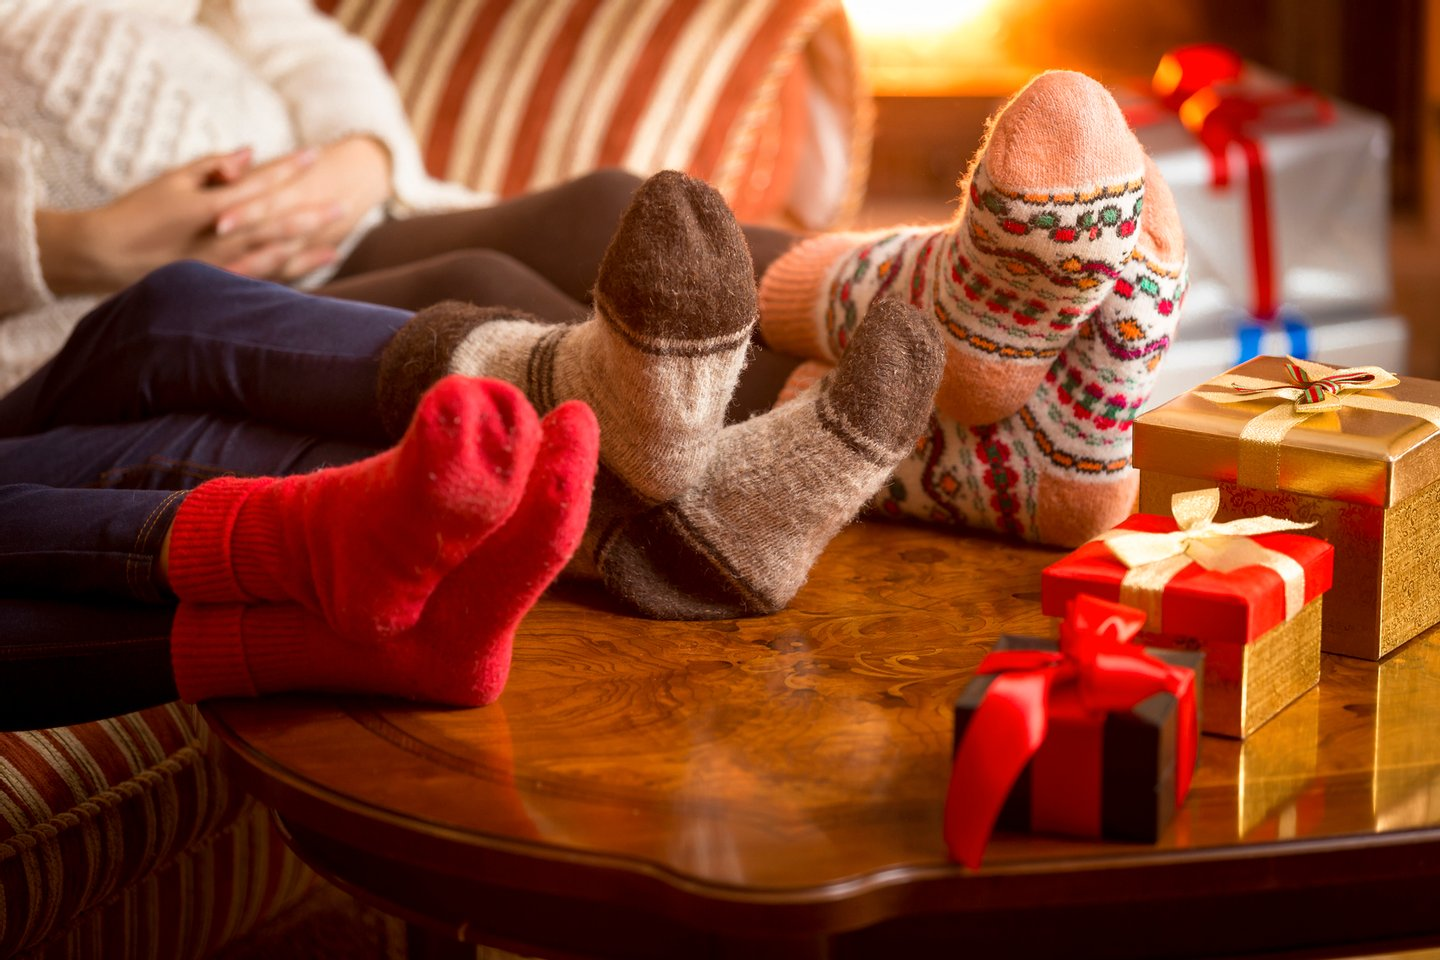 Women, Comfortable, Sock, Log, Fireplace, Child, Sitting, Burning, Christmas Stocking, Heat - Temperature, Togetherness, Relaxation, Wool, Parent, Family, Night, Winter, Fire - Natural Phenomenon, Gift, Christmas, Box - Container, Foot,